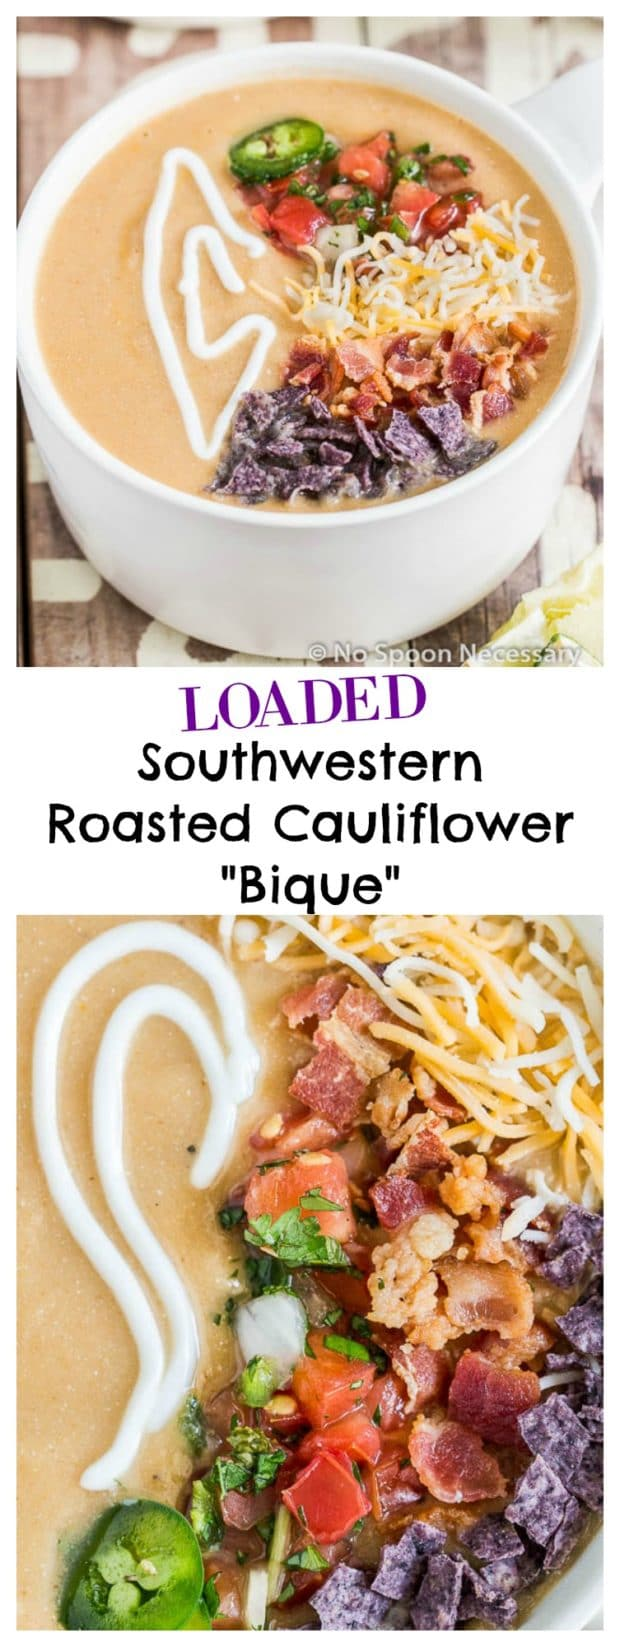 Loaded Southwest Roasted Cauliflower Bisque- 1